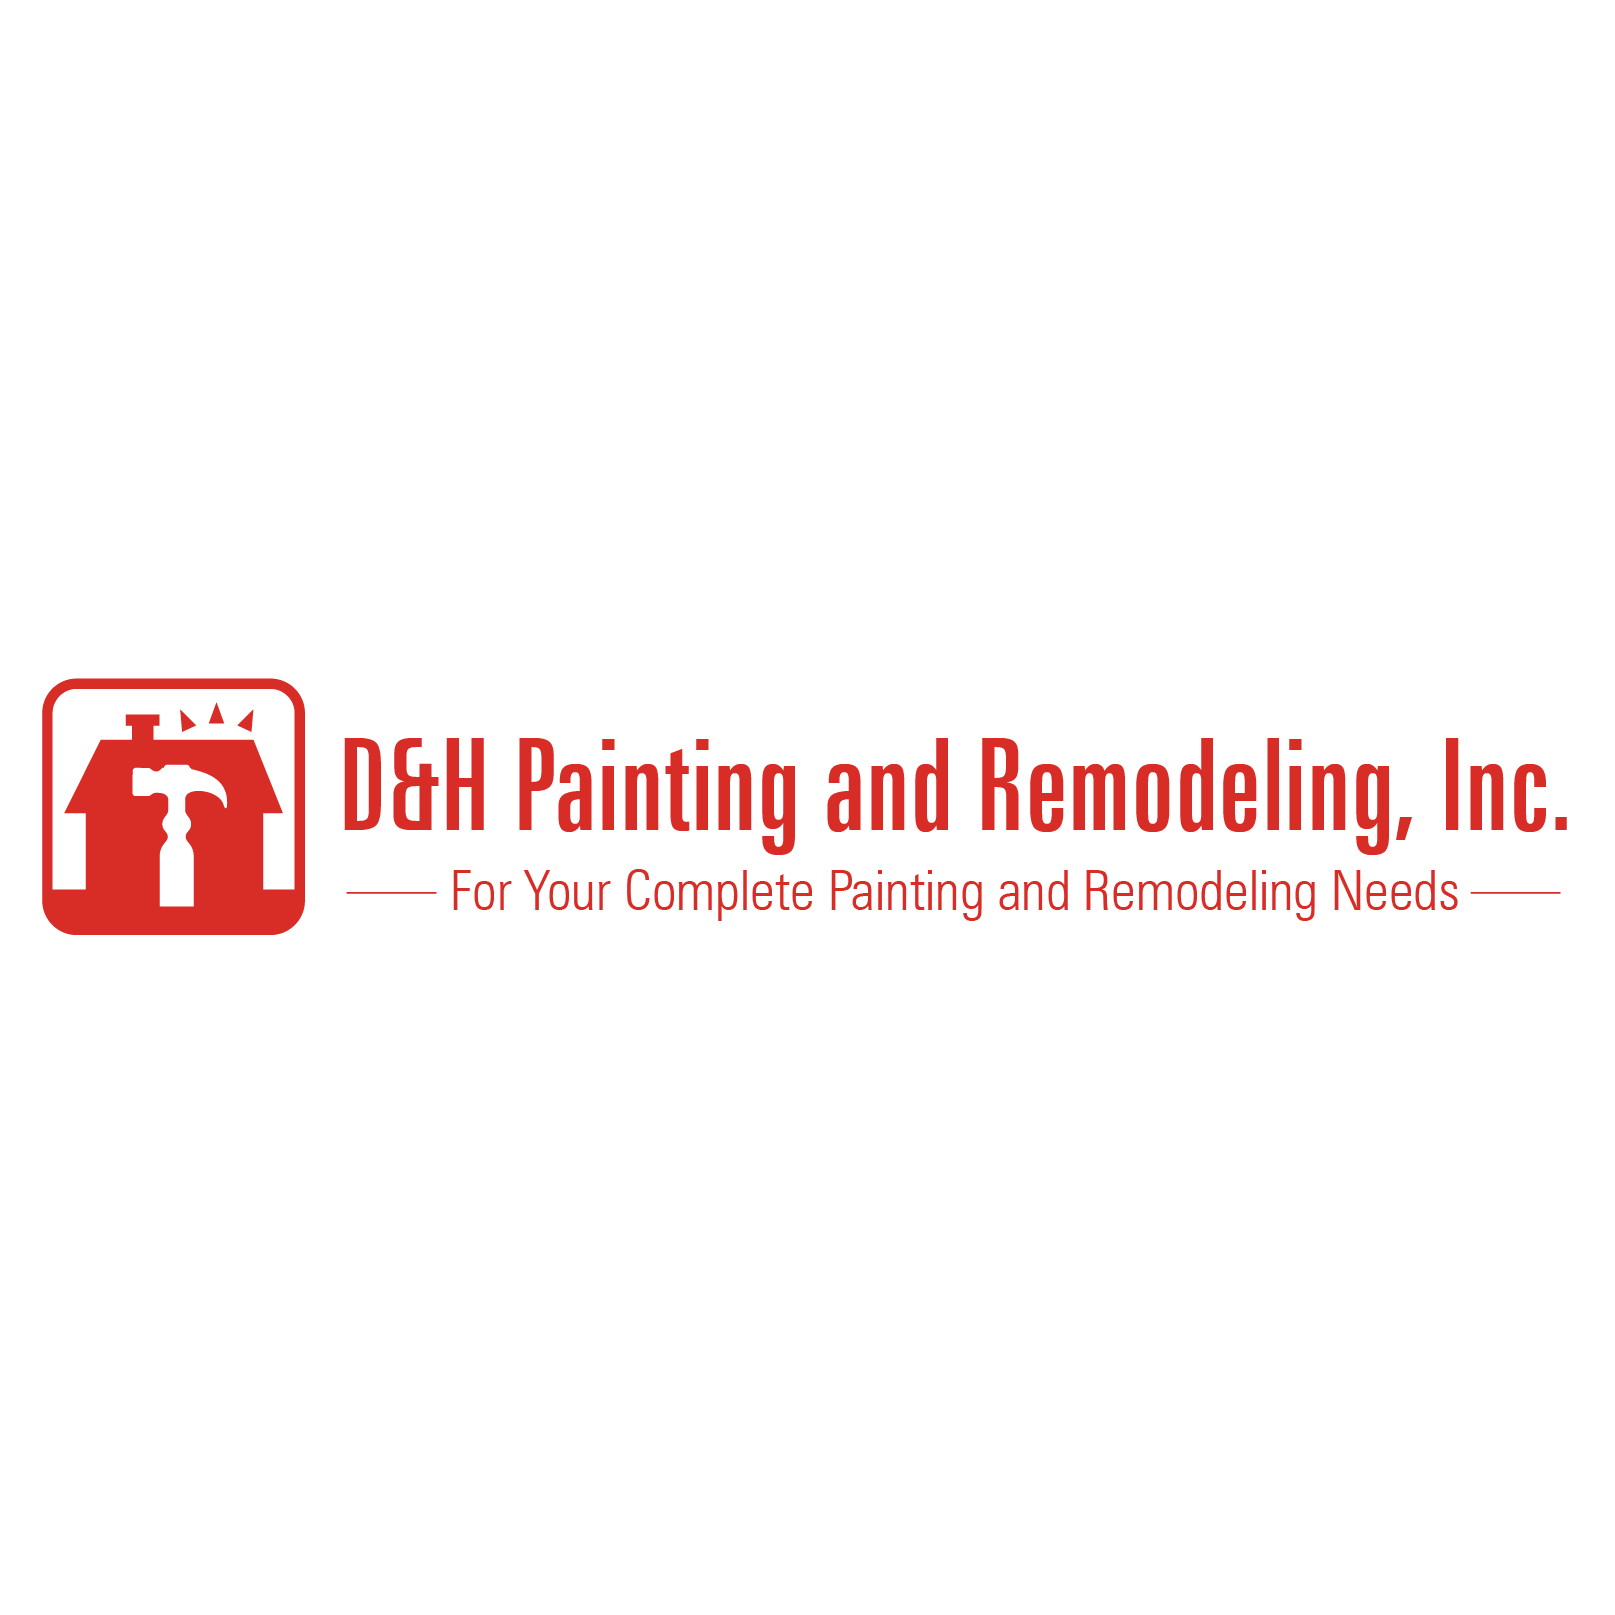 D & H Painting and Remodeling